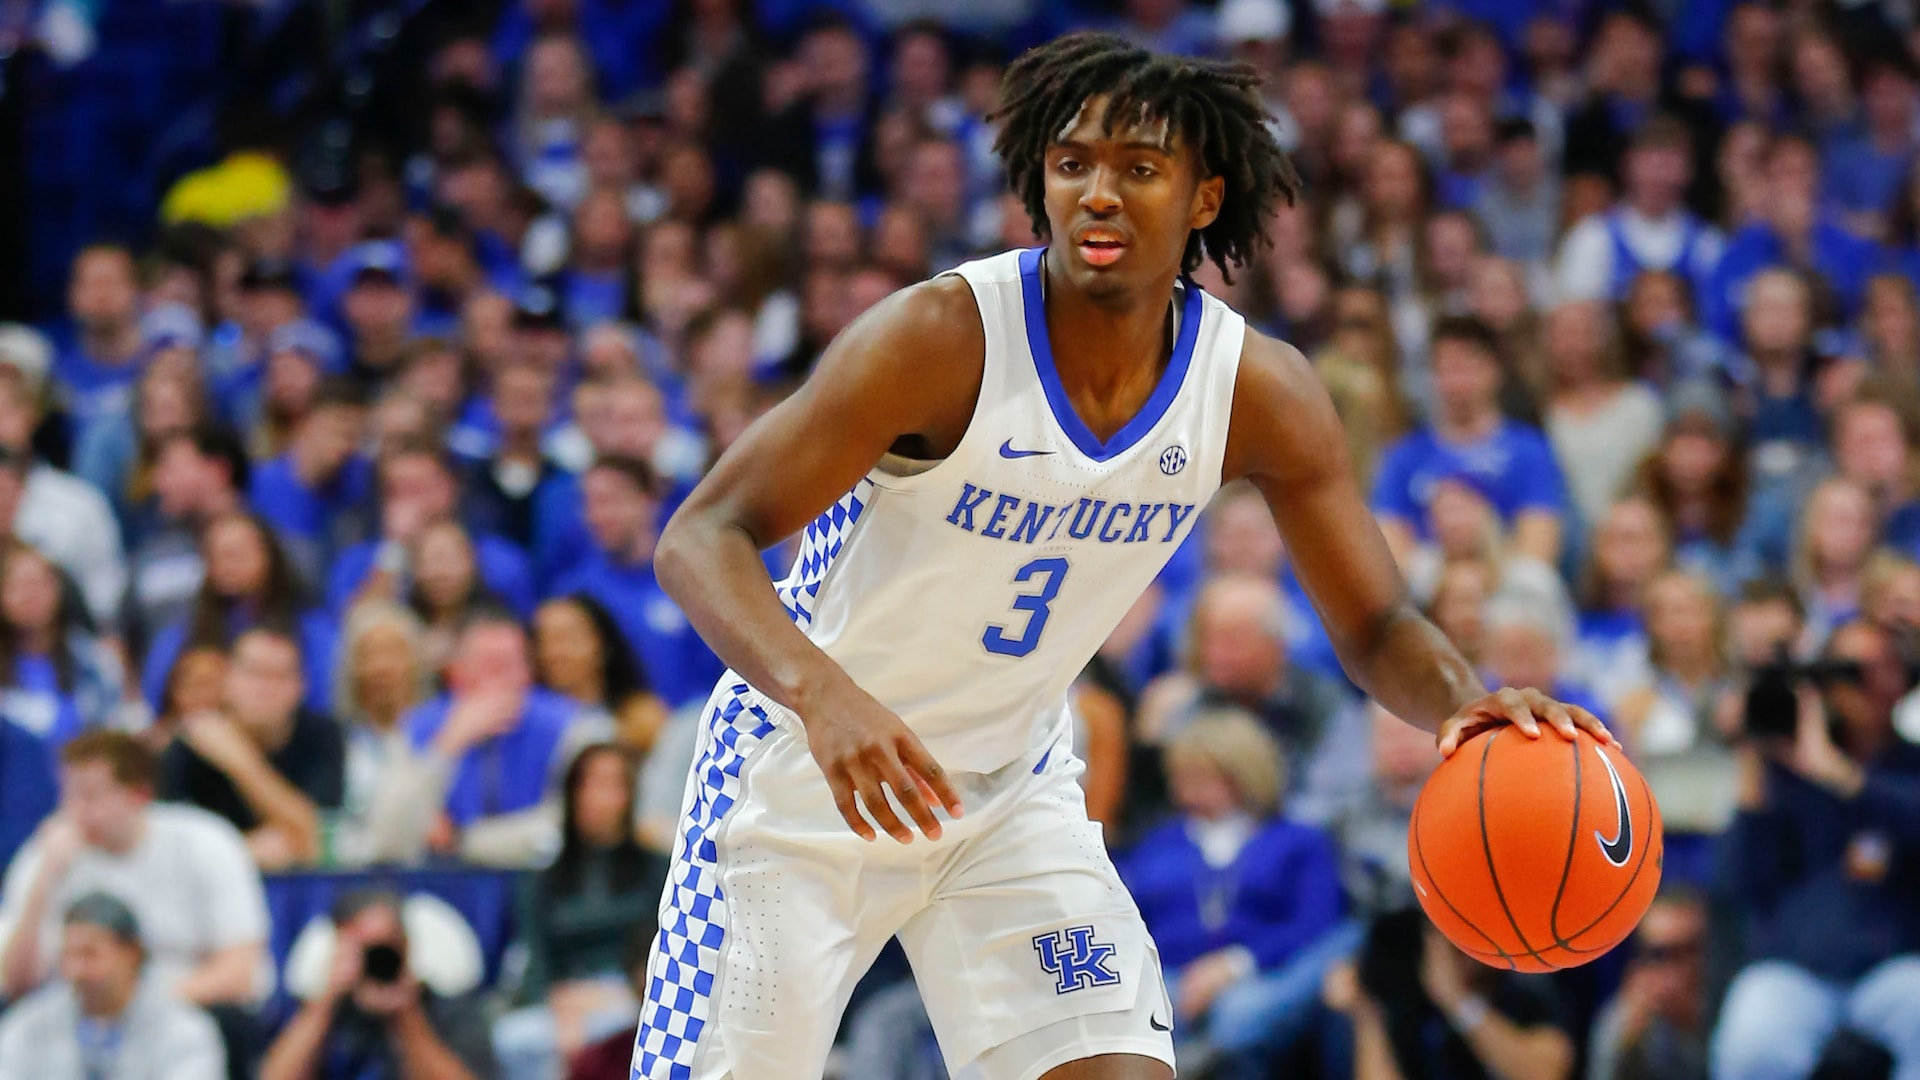 Kentucky's Tyrese Maxey showing he can do it all